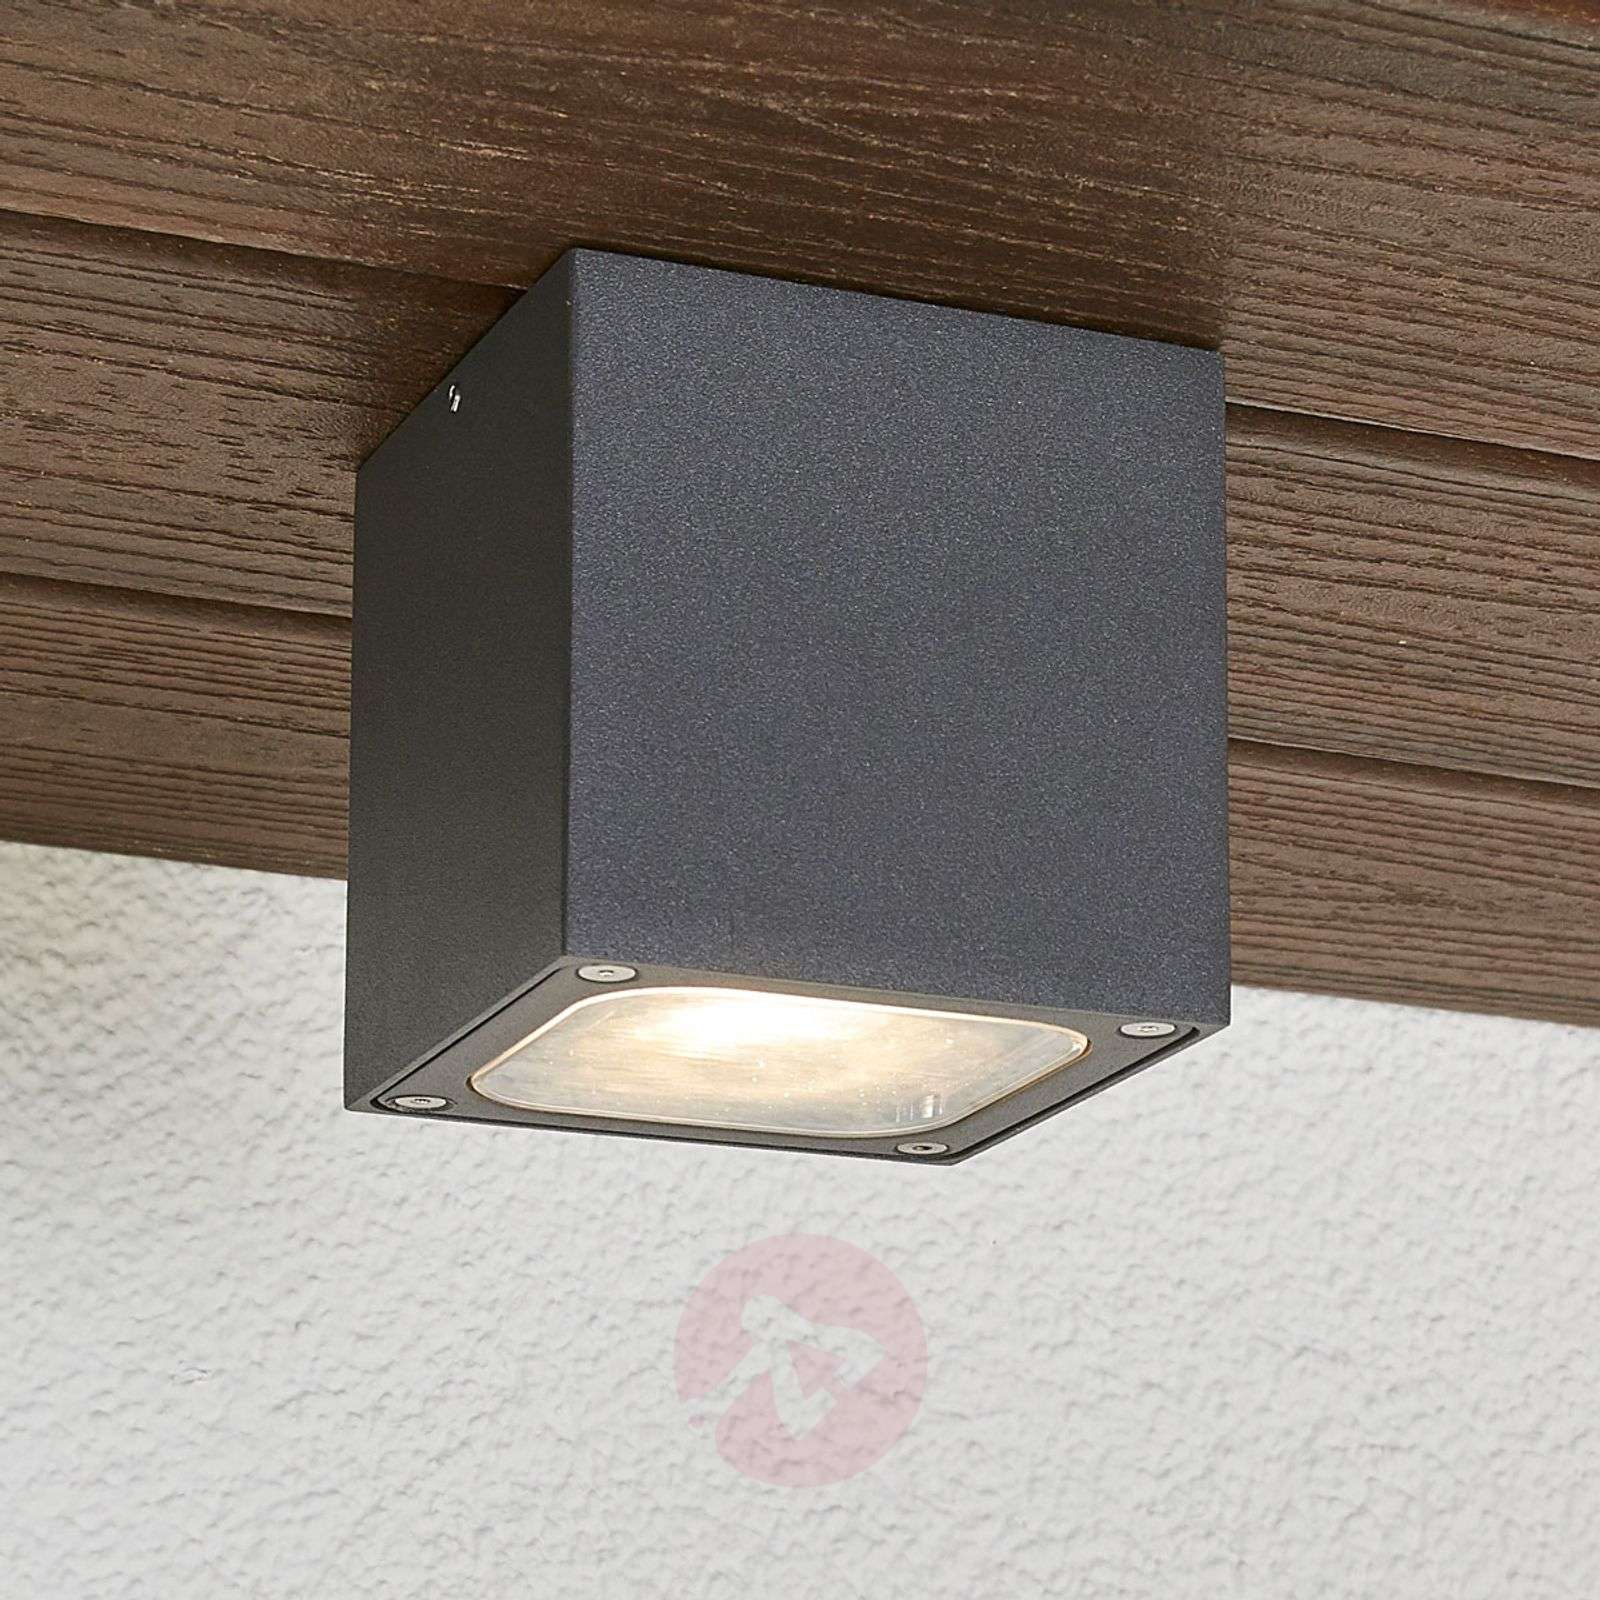 Plafoniera Per Esterno A Led : Acquista plafoniera cubica led da esterni tanea ip54 lampade.it